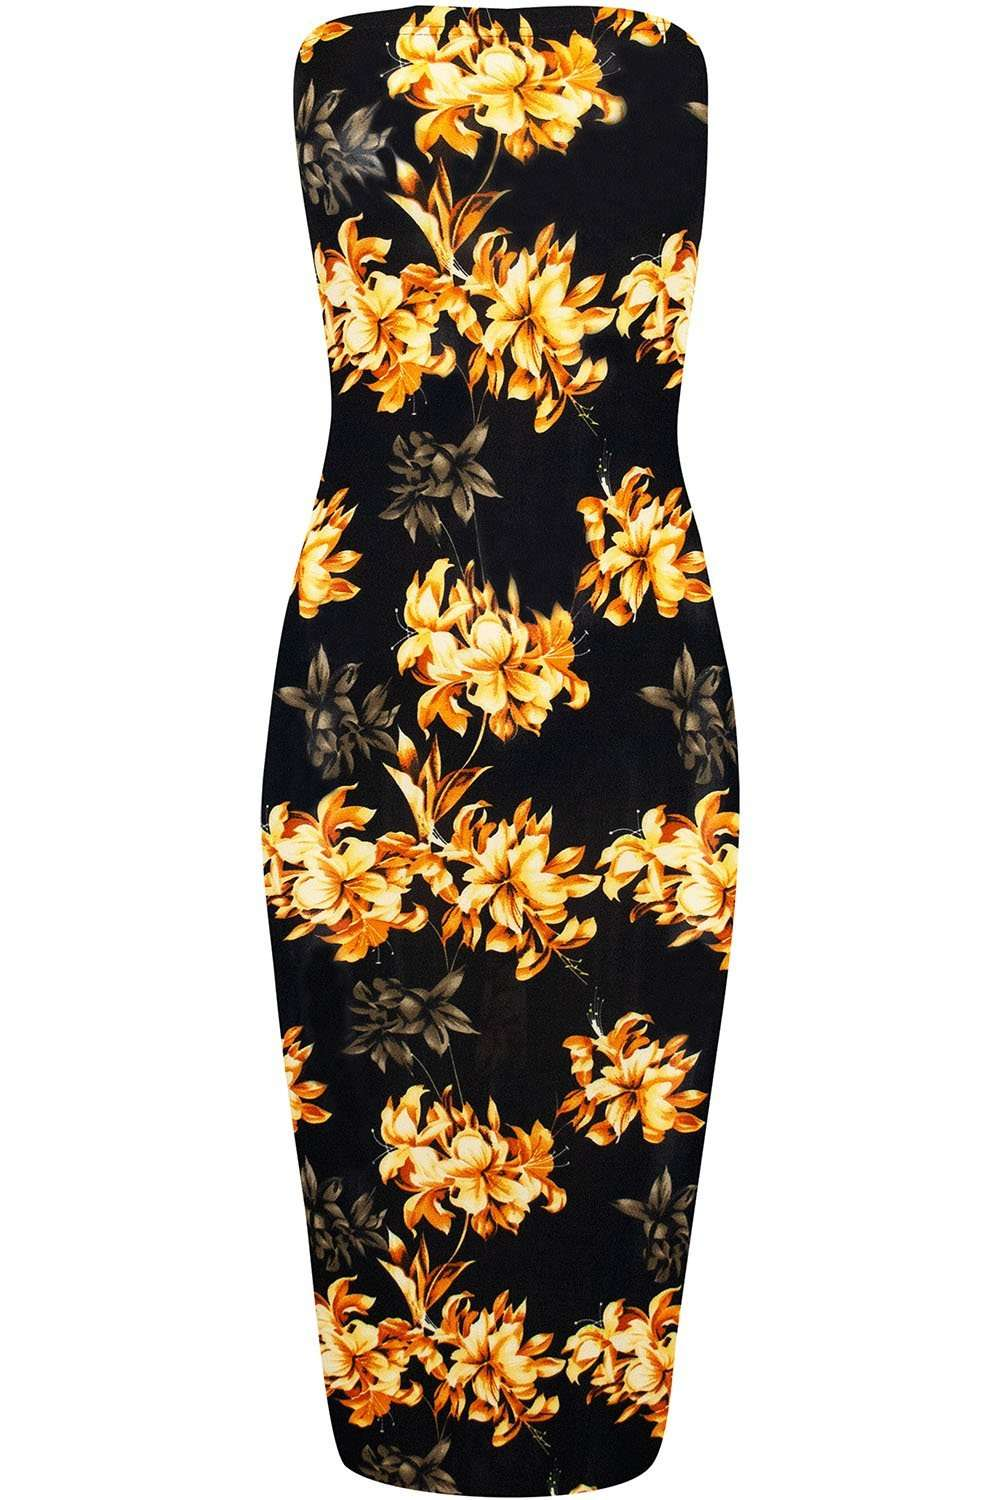 Bandeau Red Floral Print Midi Tube Dress - bejealous-com